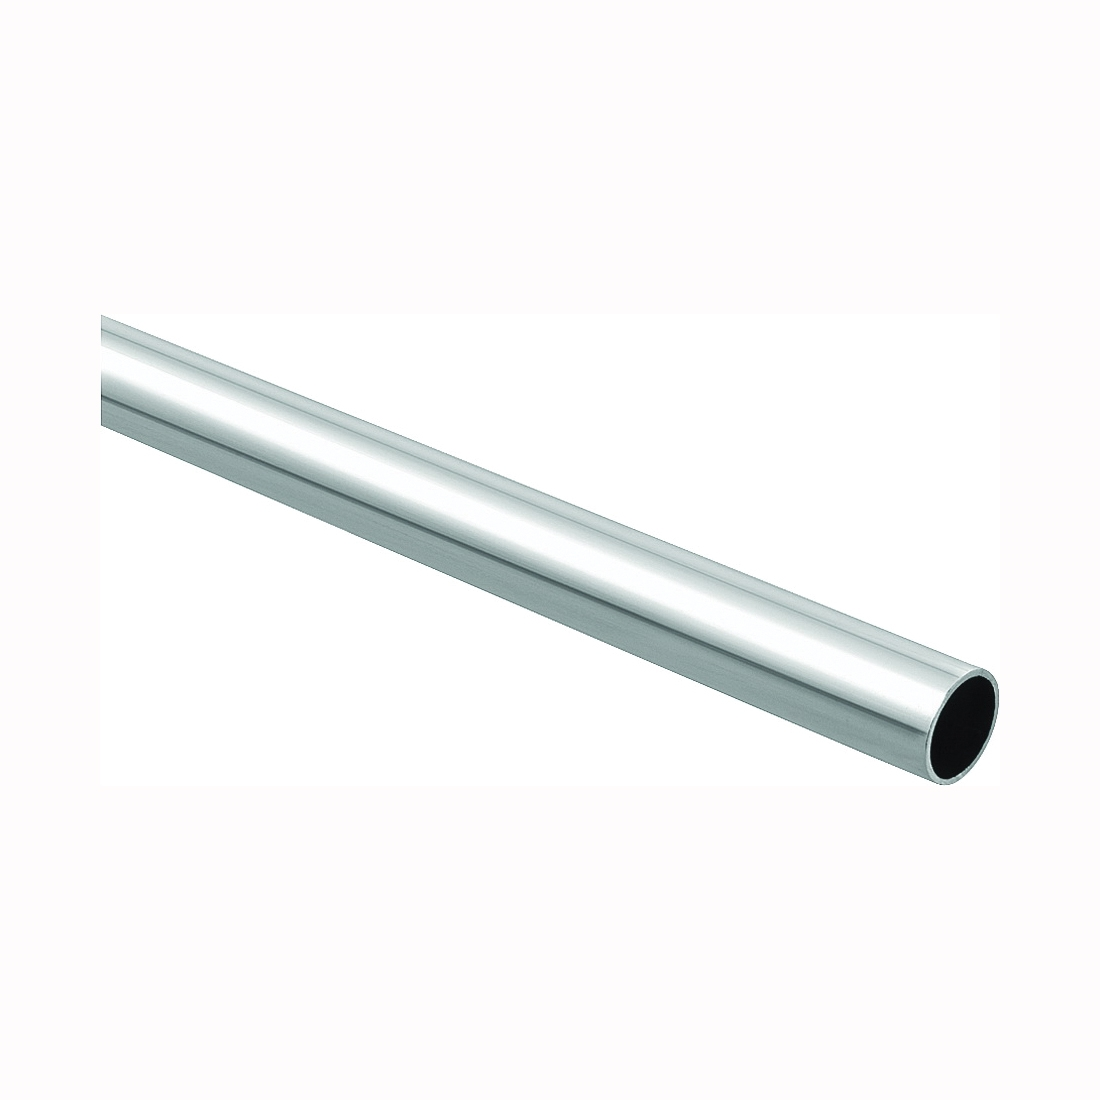 Picture of National Hardware BB8604 Series S822-099 Closet Rod, 1-5/16 in Dia, 8 ft L, Steel, Chrome